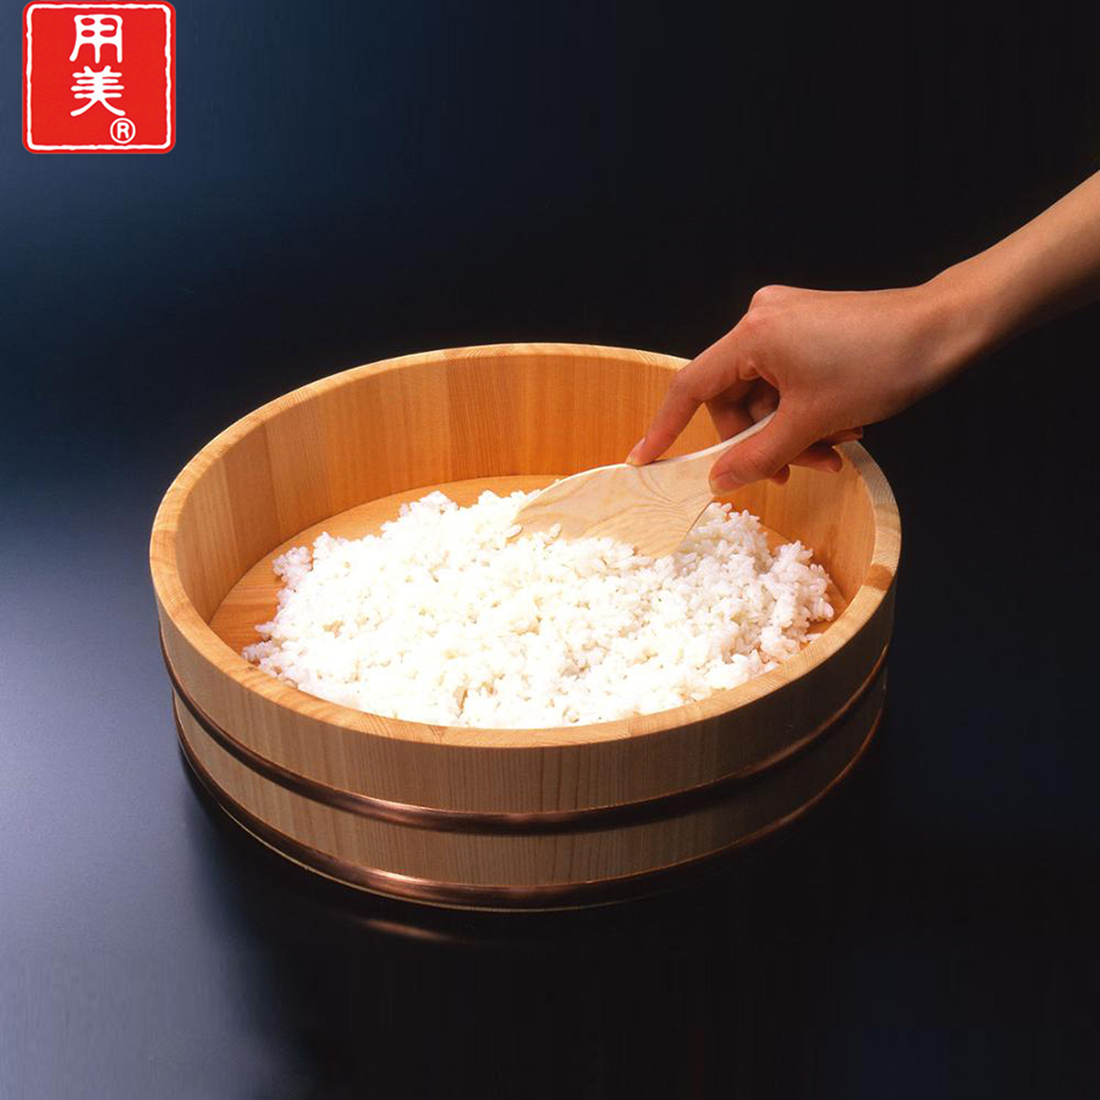 Japanese Wooden High End Custom Rice Serving Bowls View Rice Serving Bowls Youbi Product Details From Yamacoh Co Ltd On Alibaba Com